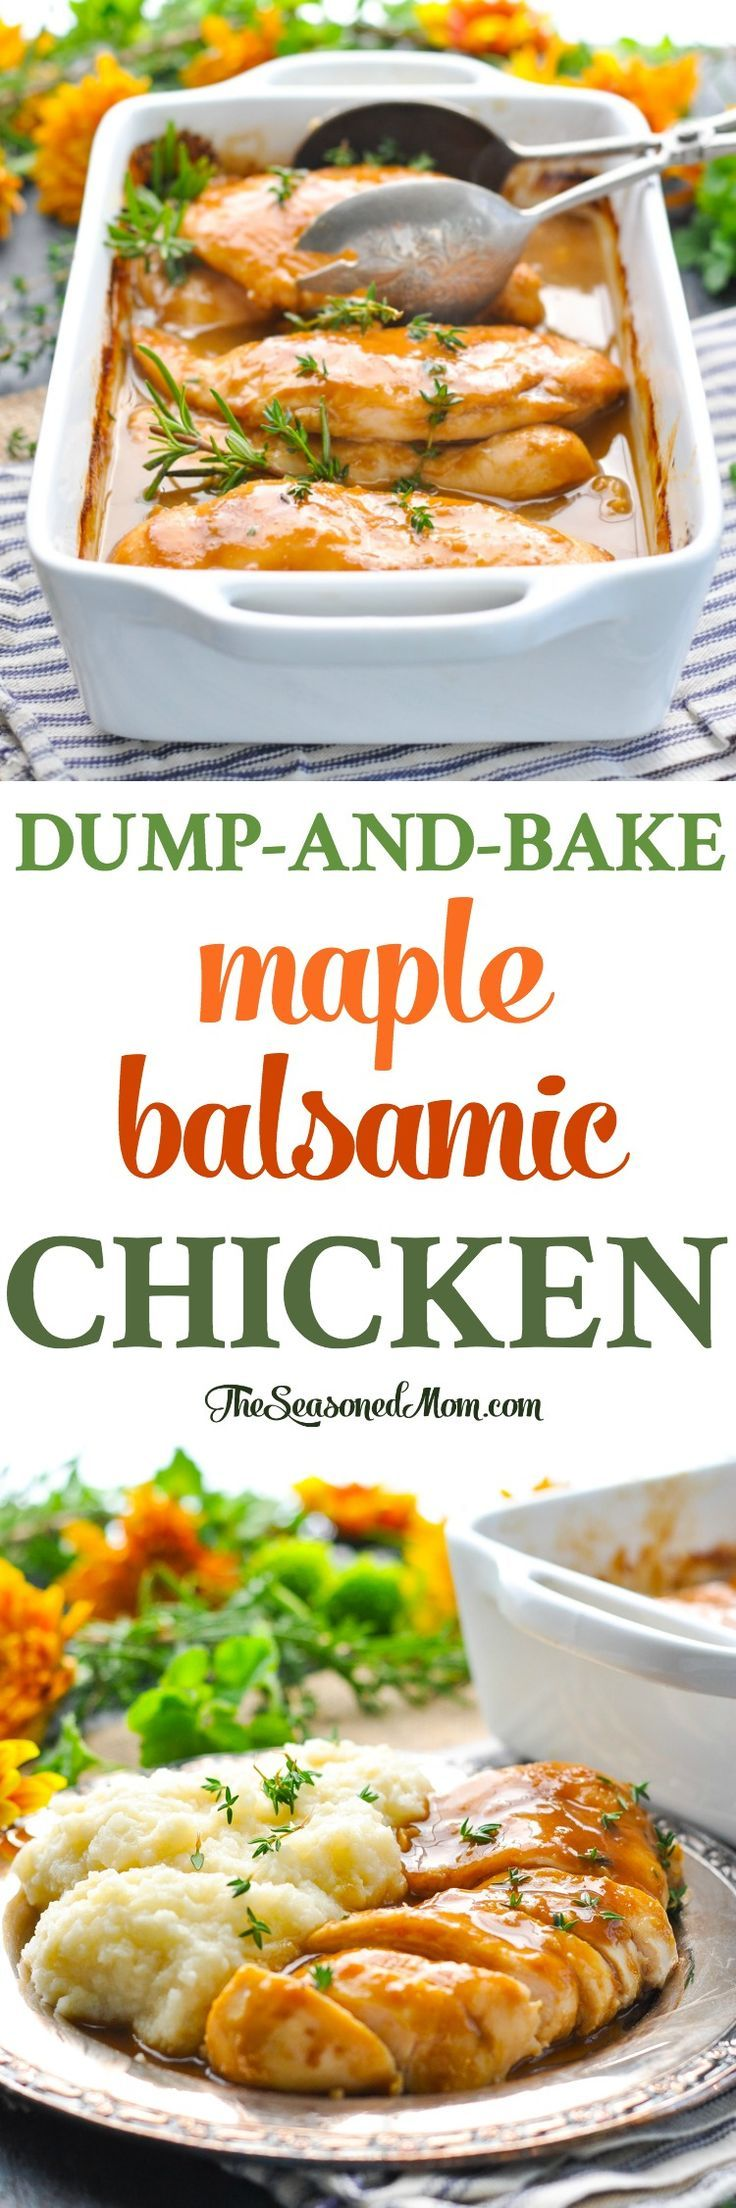 Just 10 minutes of prep for this easy dinner: Dump-and-Bake Maple Balsamic Chicken! Healthy Dinner Recipes | Chicken Breast Recipes #chicken #dinner #chickenbreast #realfood